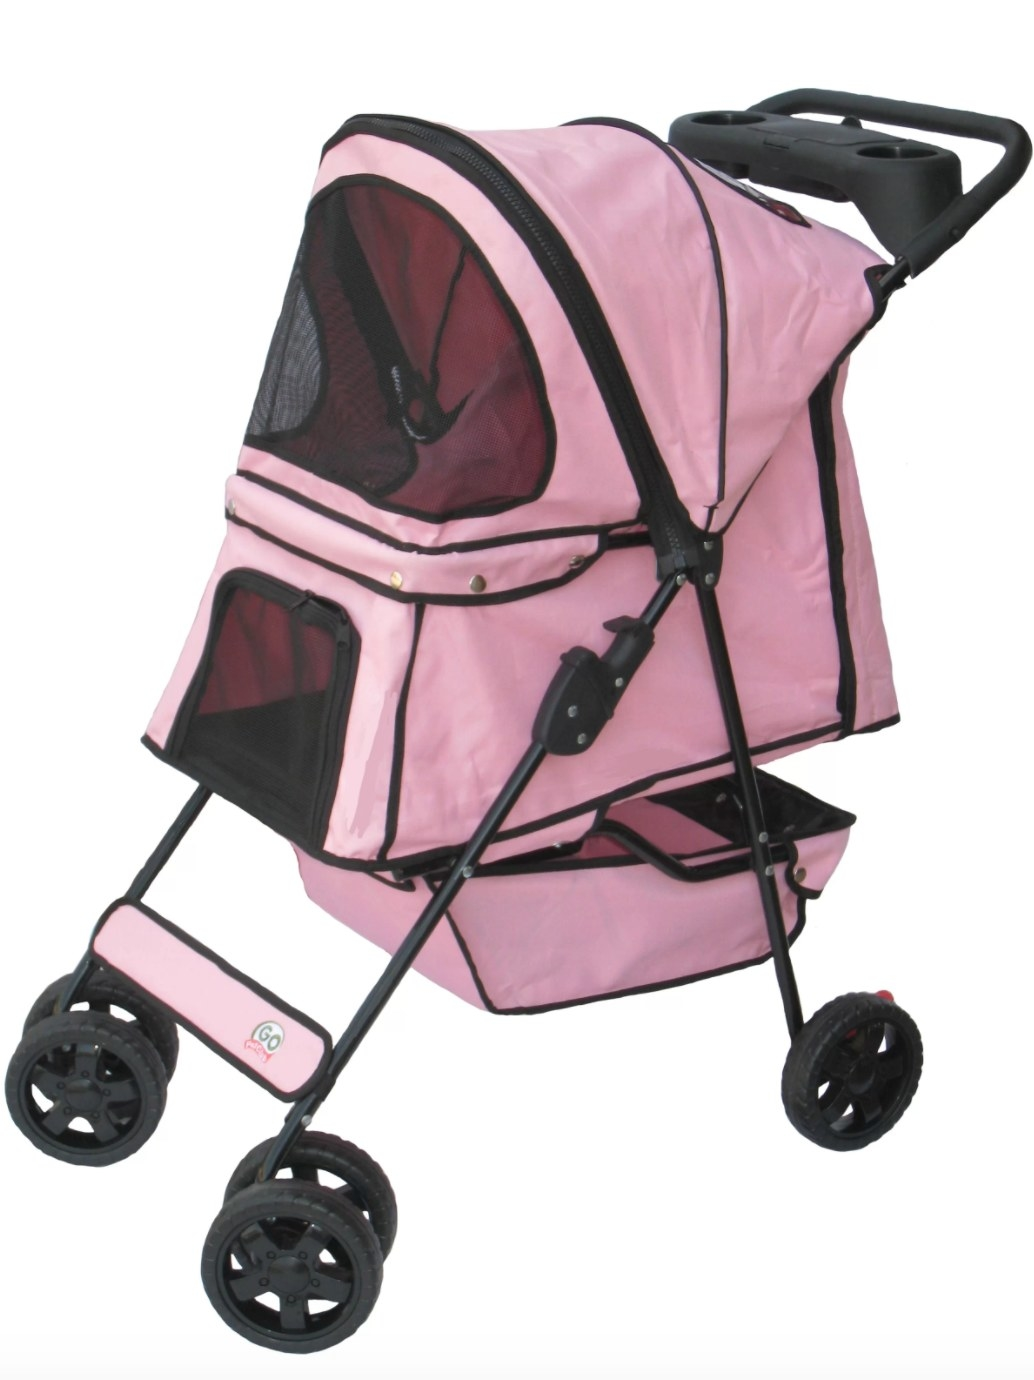 The pet stroller in pink